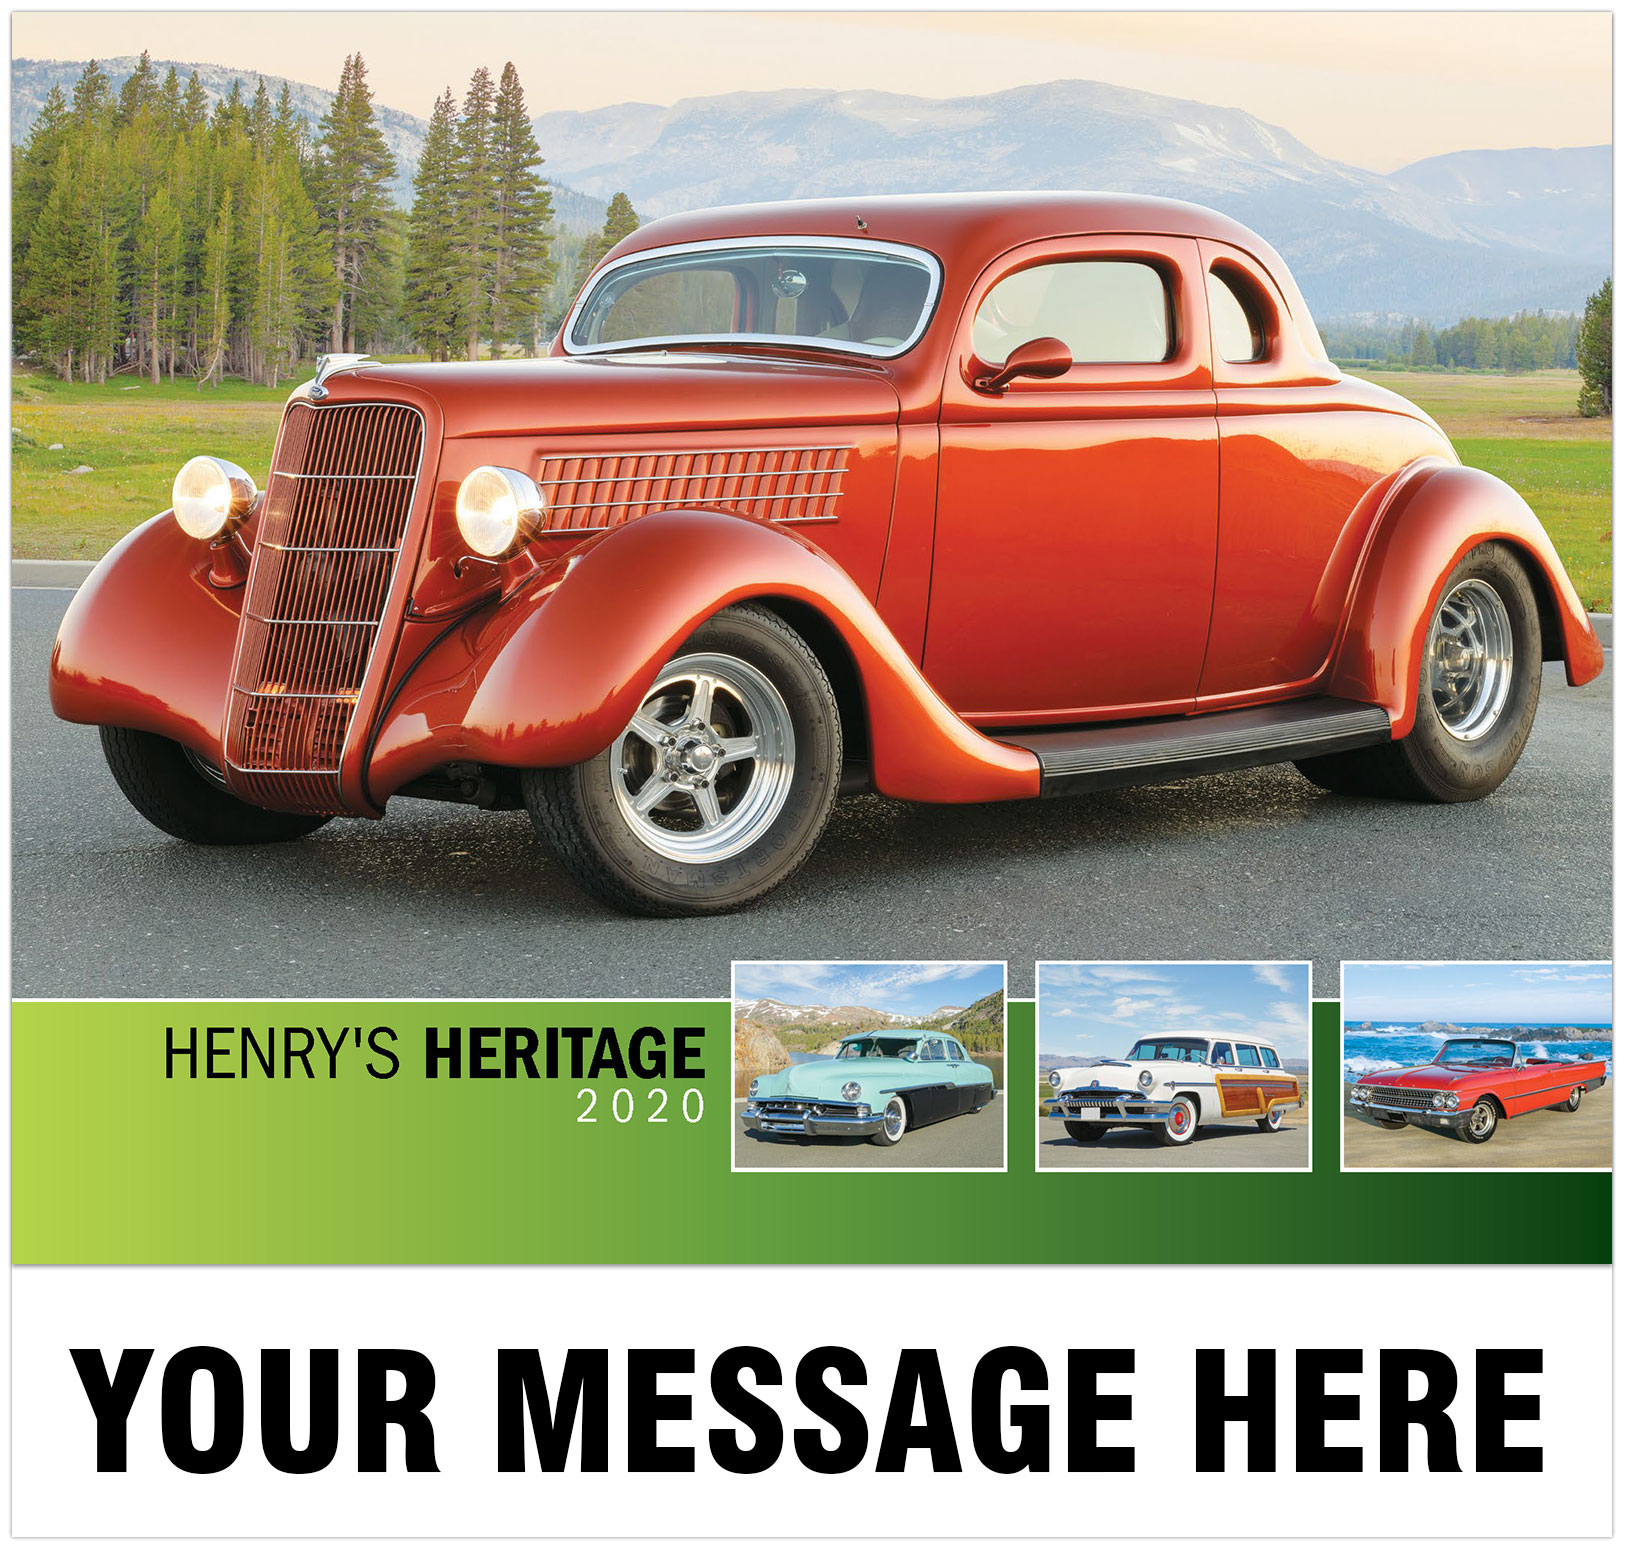 Henry S Heritage Ford Cars 2020 Promotional Calendar Imprinted With Your Business Organization Or Event Name Logo And